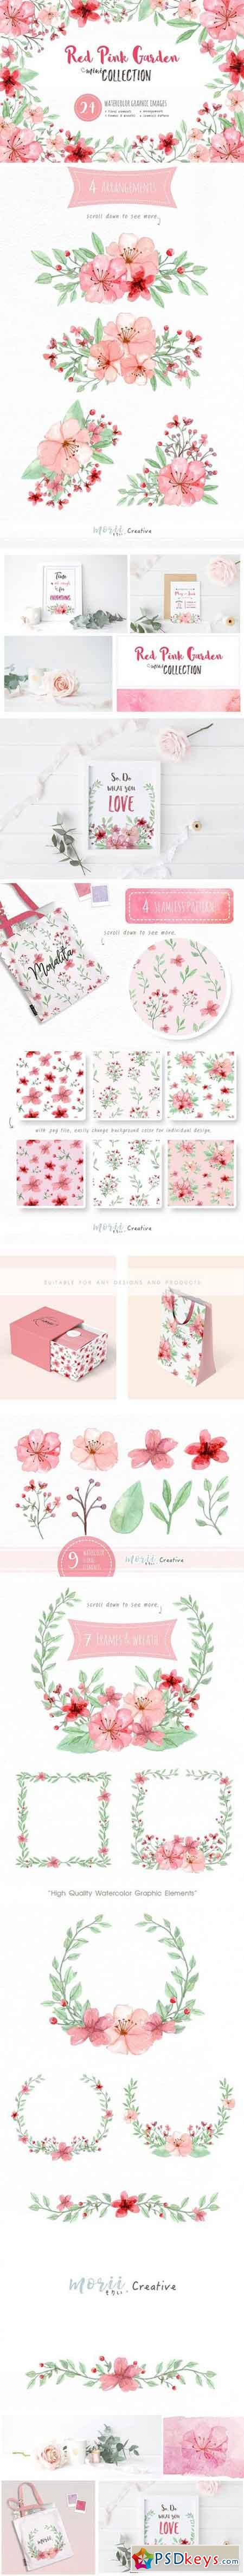 RedPink Garden Flower Graphic Set 1908827